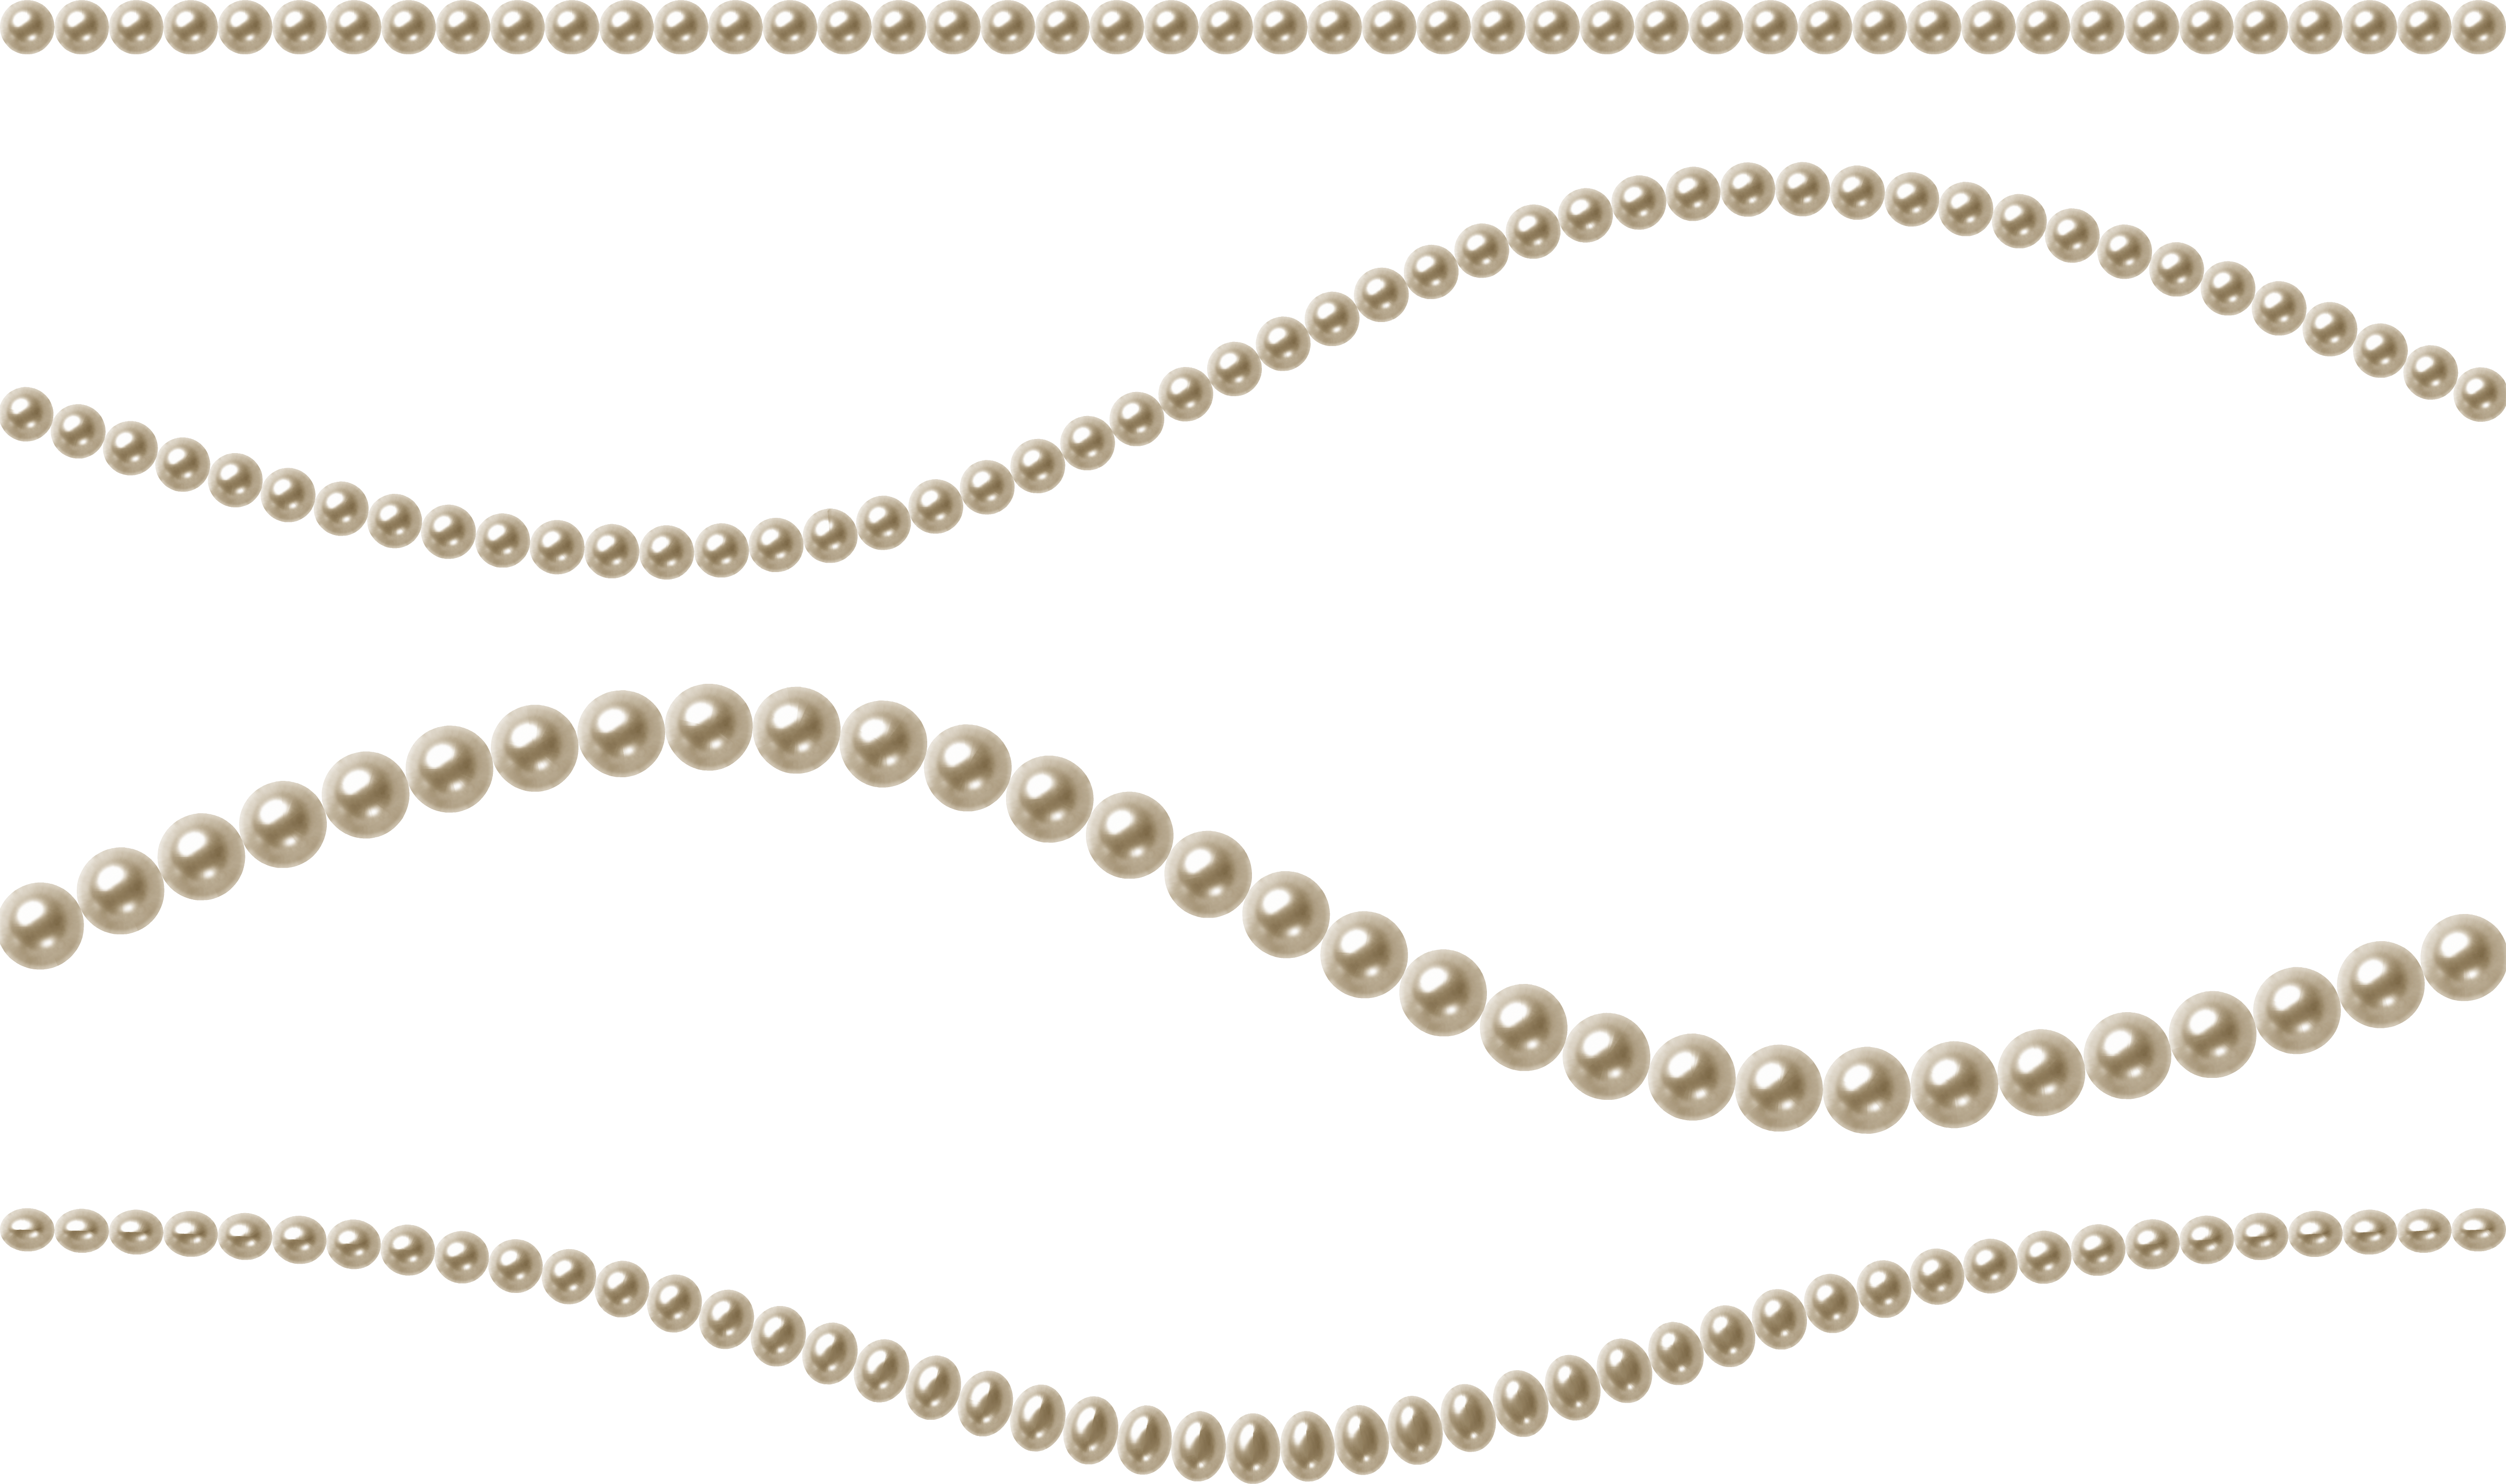 String of pearls png. Pearl image purepng free